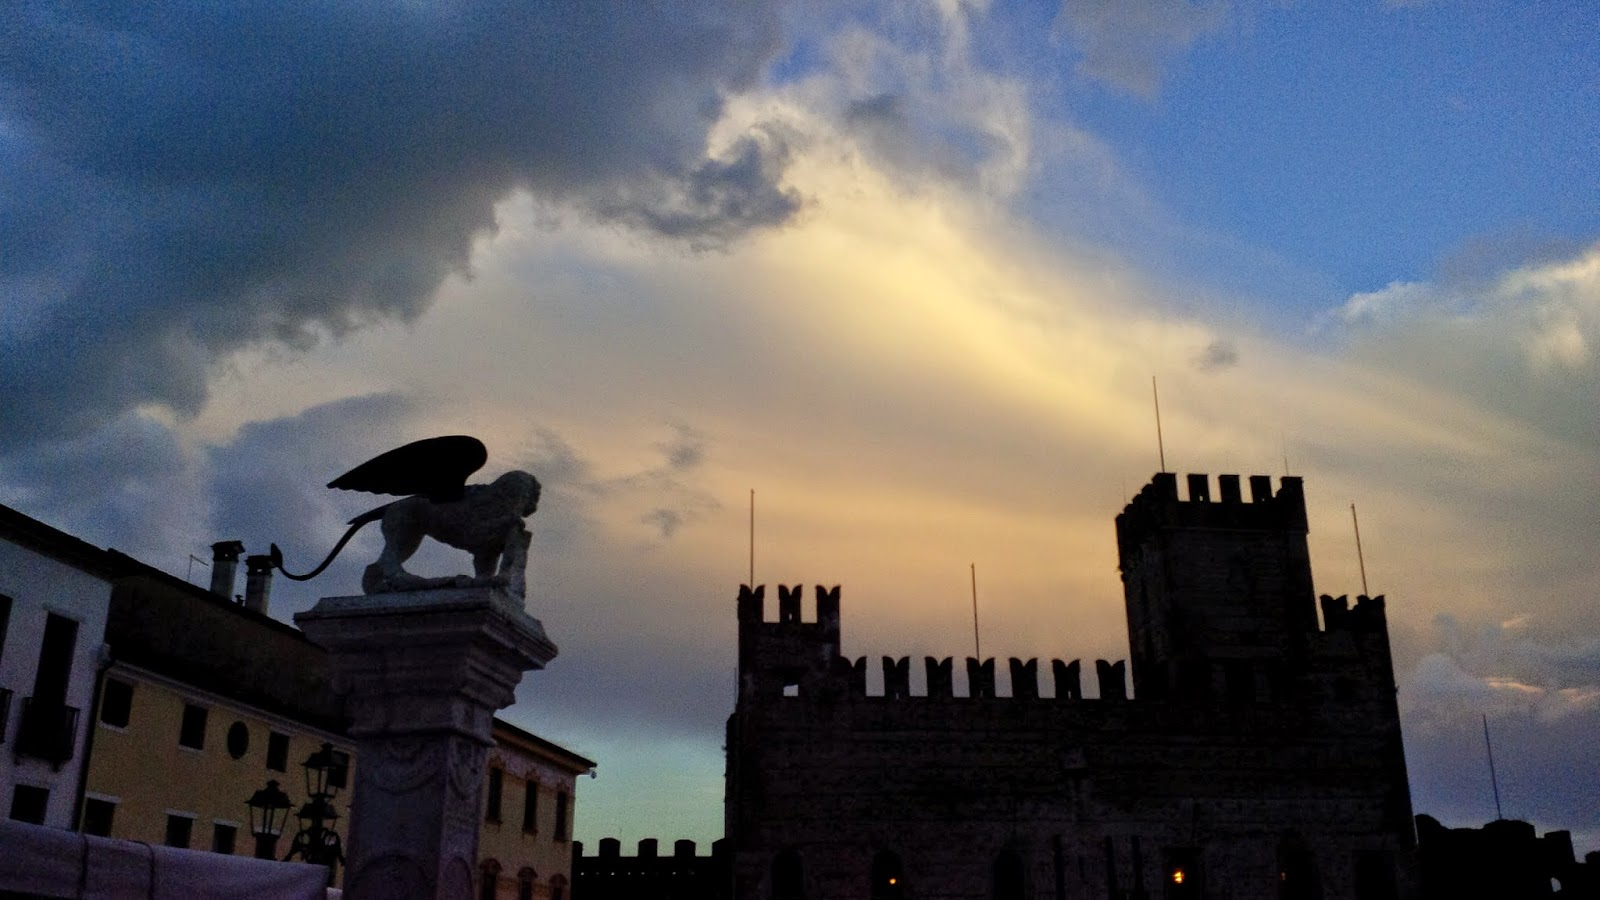 The winged lion and the Lower Castle in Marostica